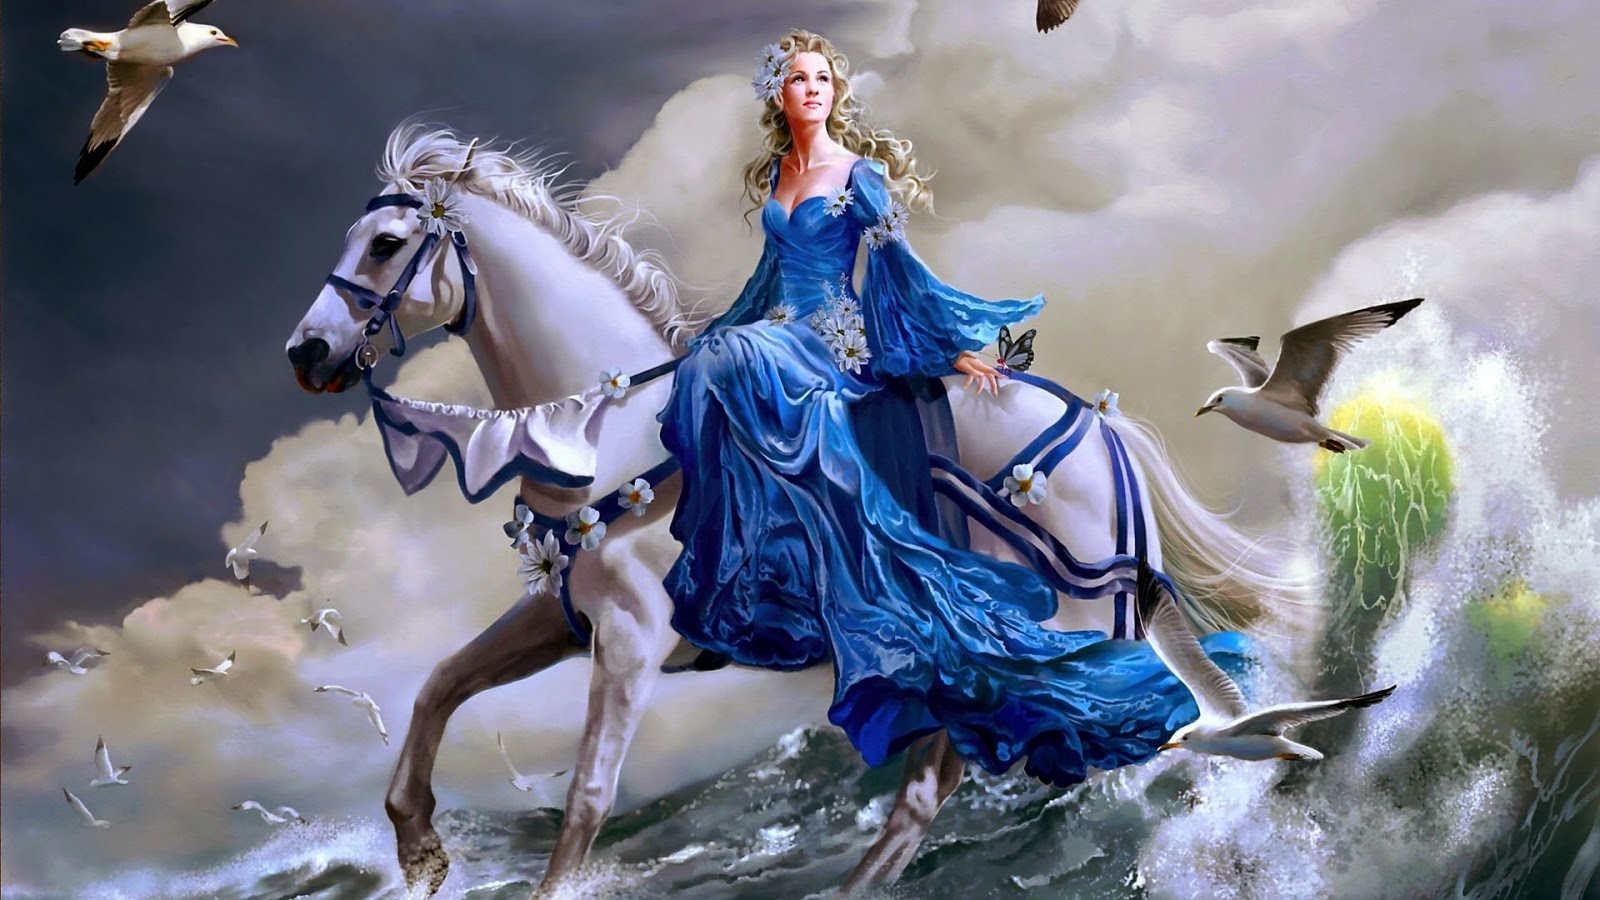 Dynamic Views Amazing 3d Pictures Digital Art Gallery